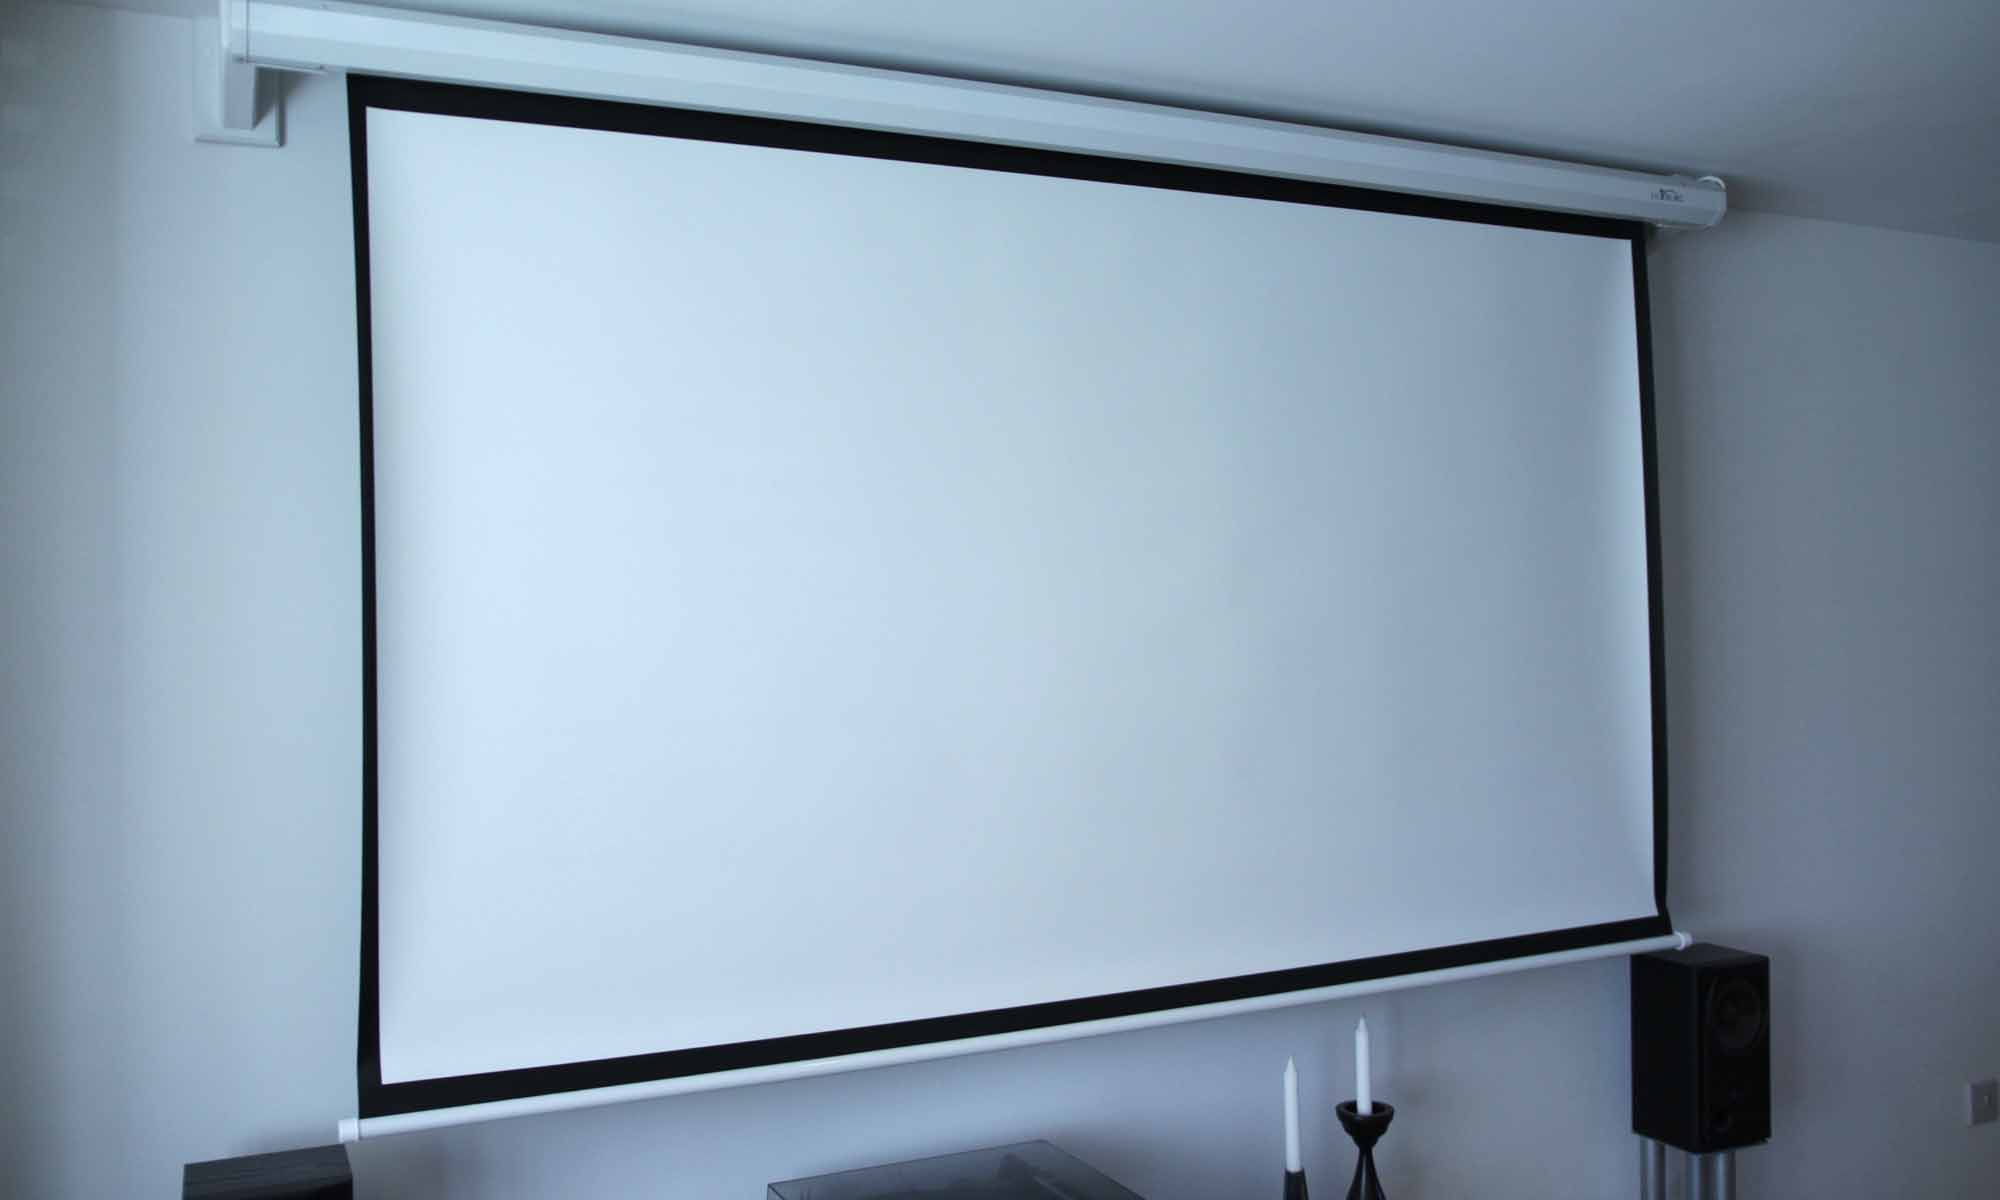 Installing A Projector Screen